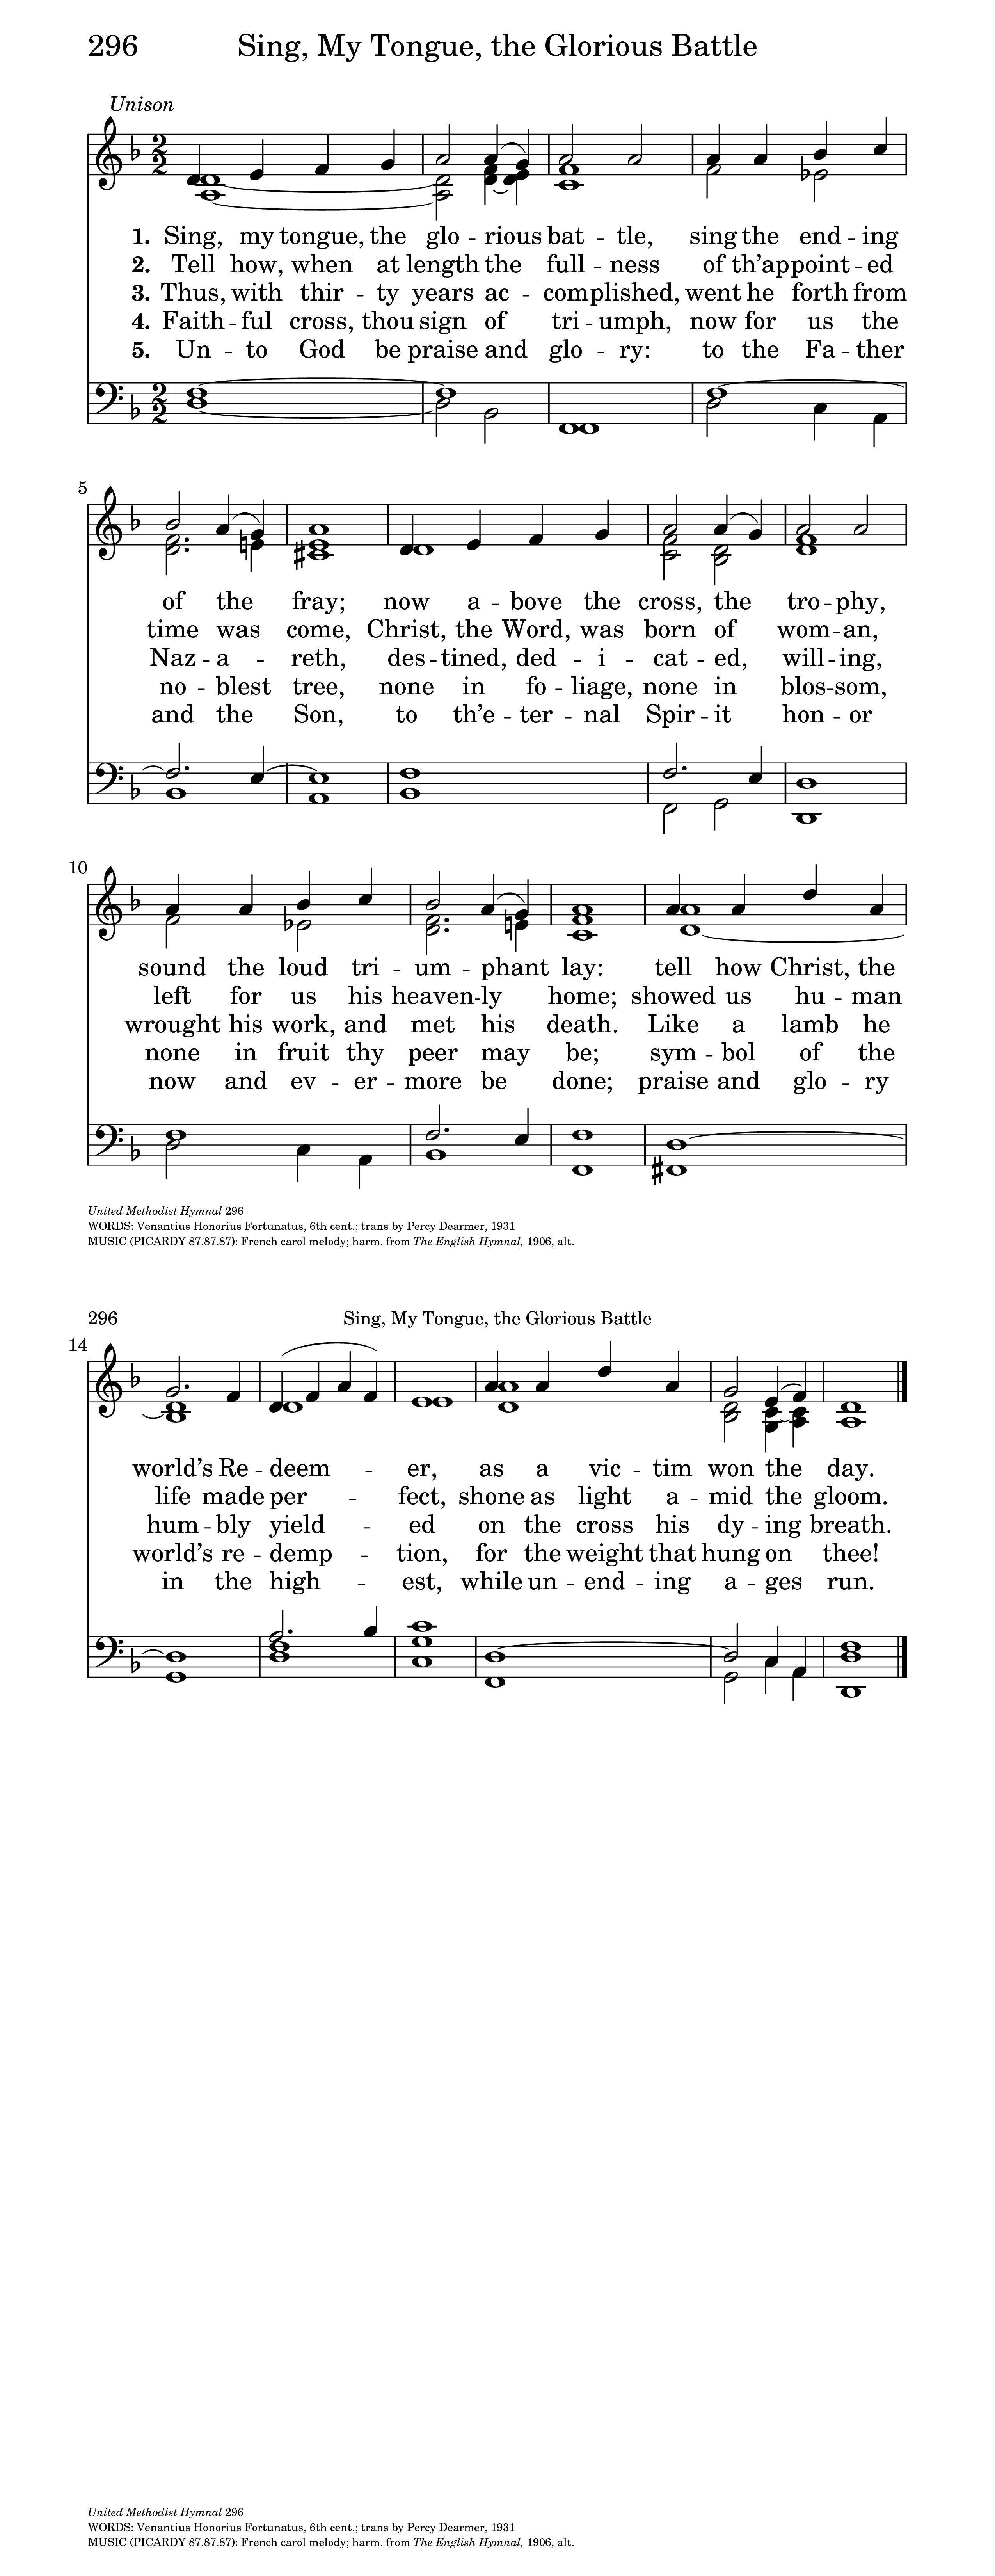 Sing, my tongue, the glorious battle, Sing the ending of the fray (Dearmer)  | Hymnary.org